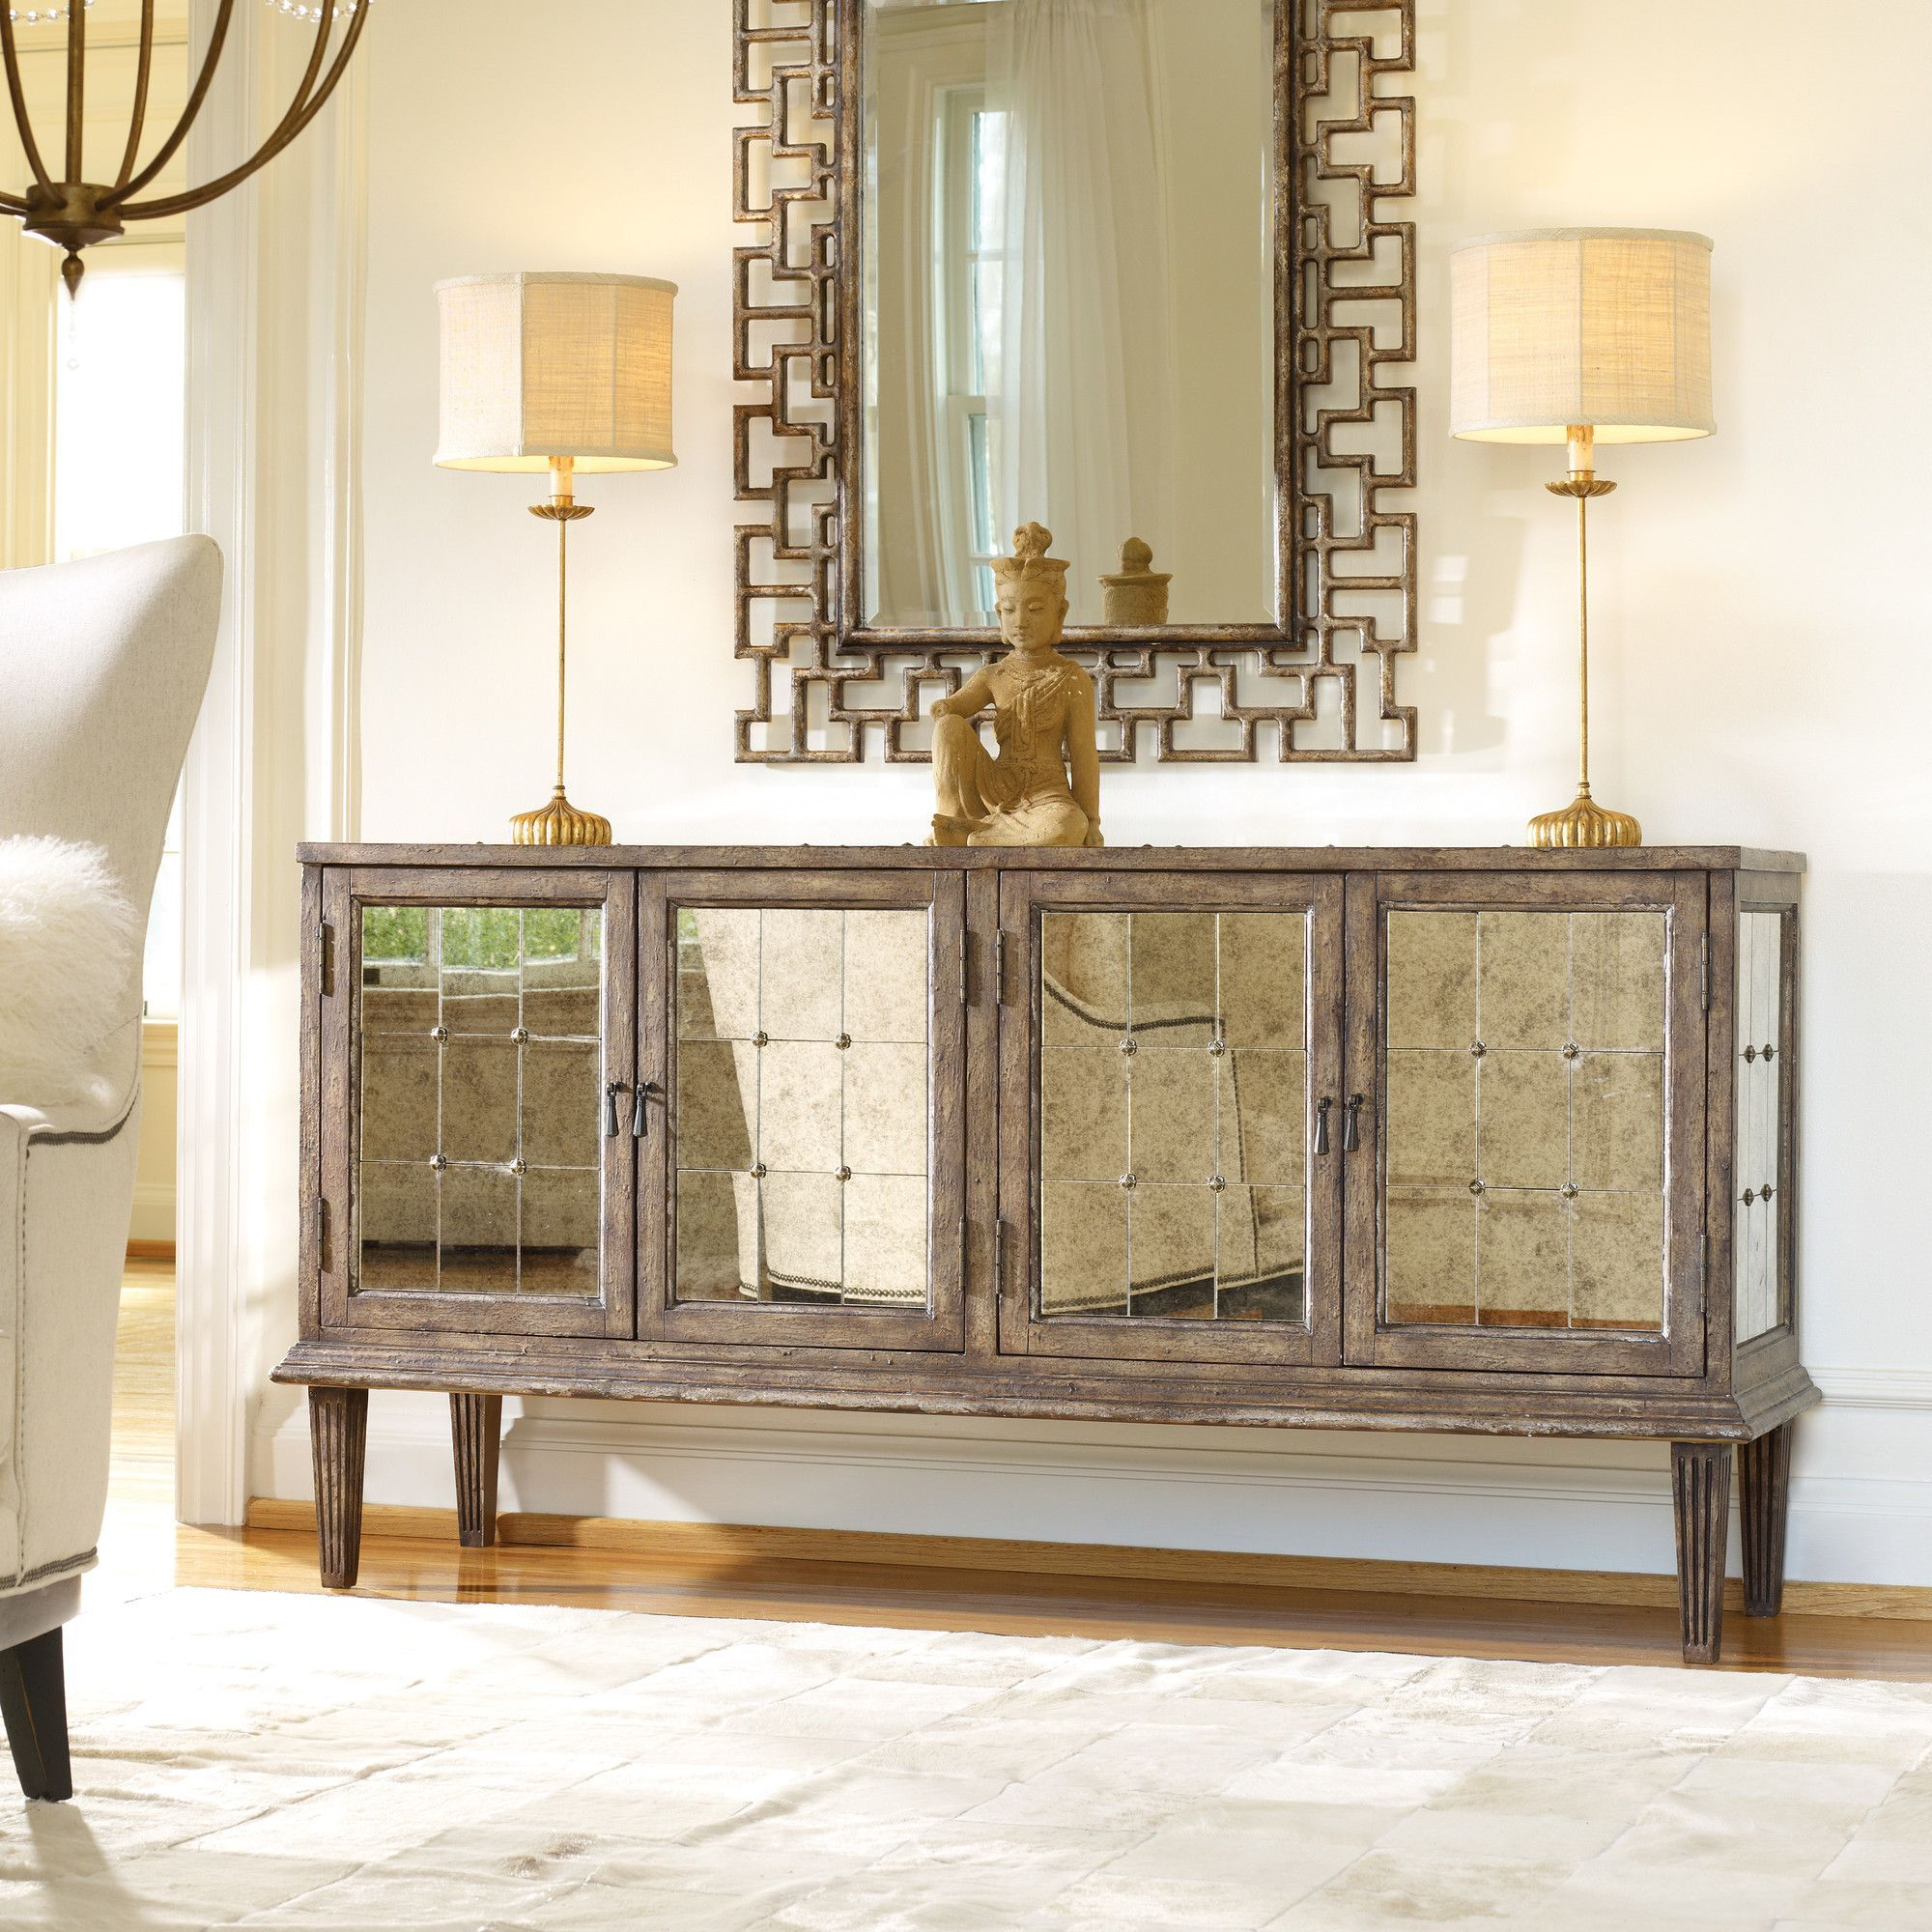 Shop For Hooker Furniture DeVera Mirrored Console And Other Living Room Cabinets The Delivers It